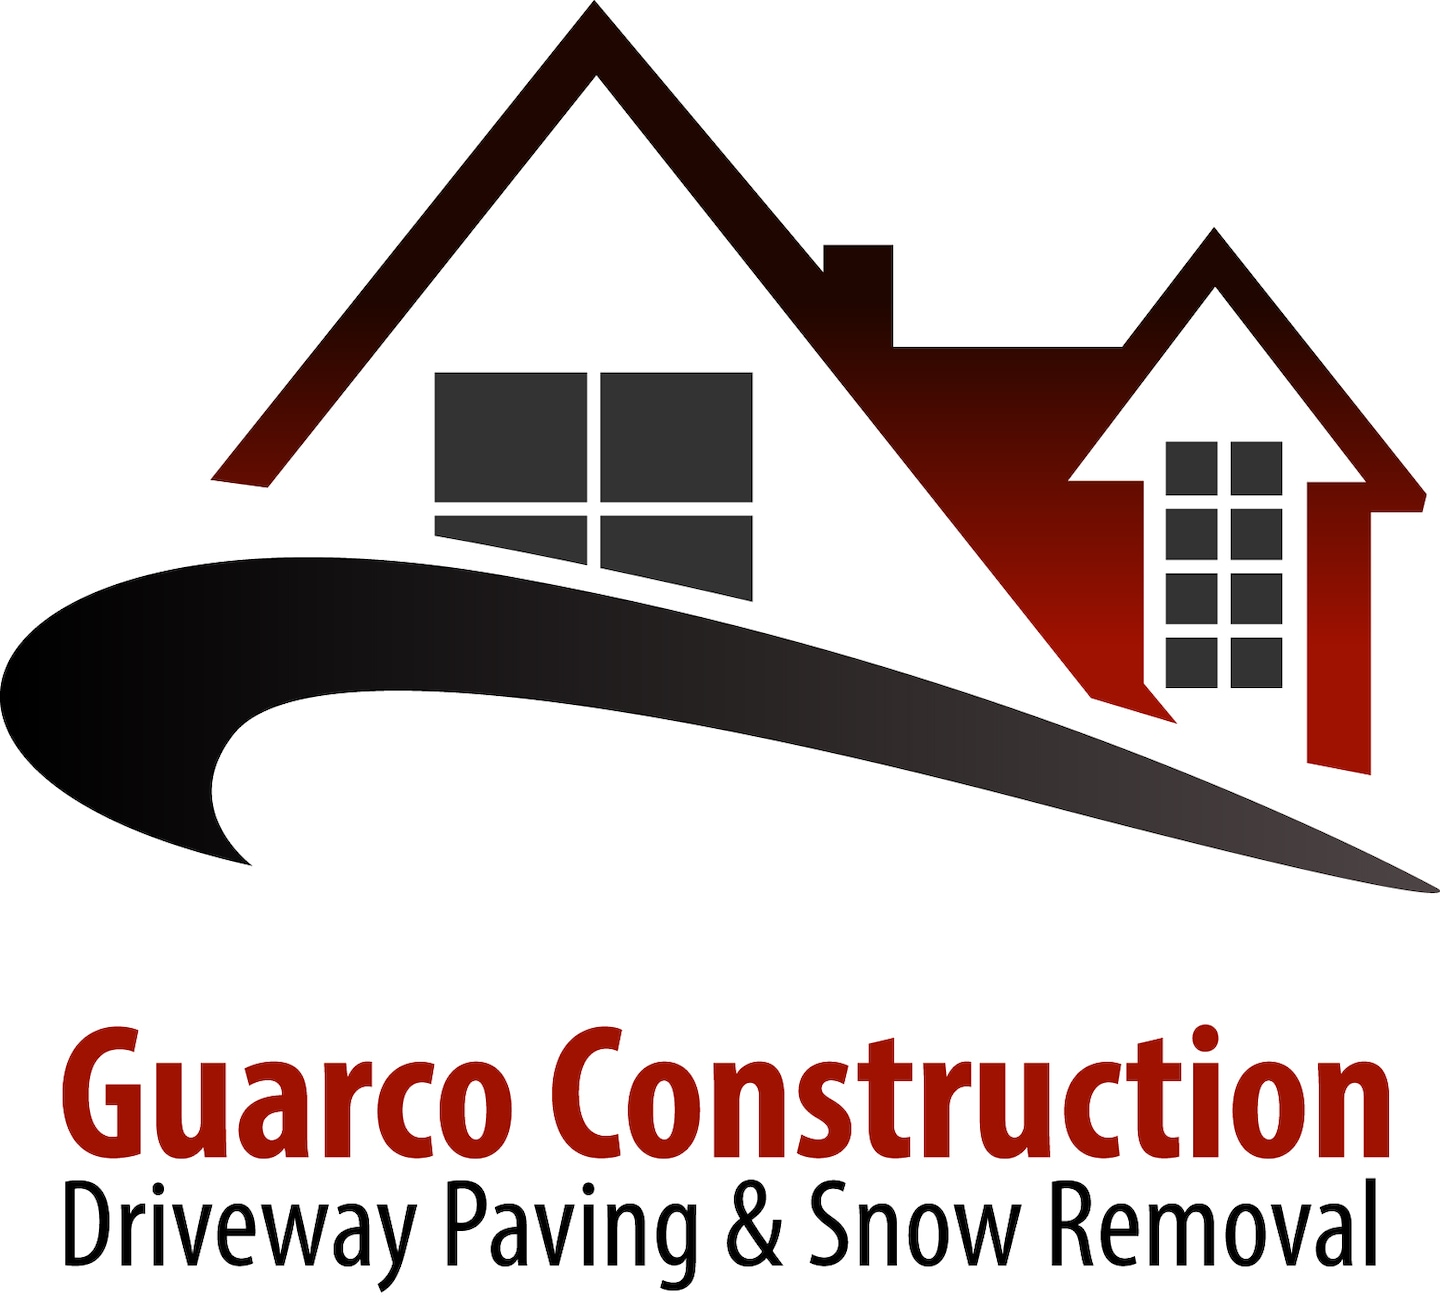 Guarco Construction Driveway Paving & Snow Removal